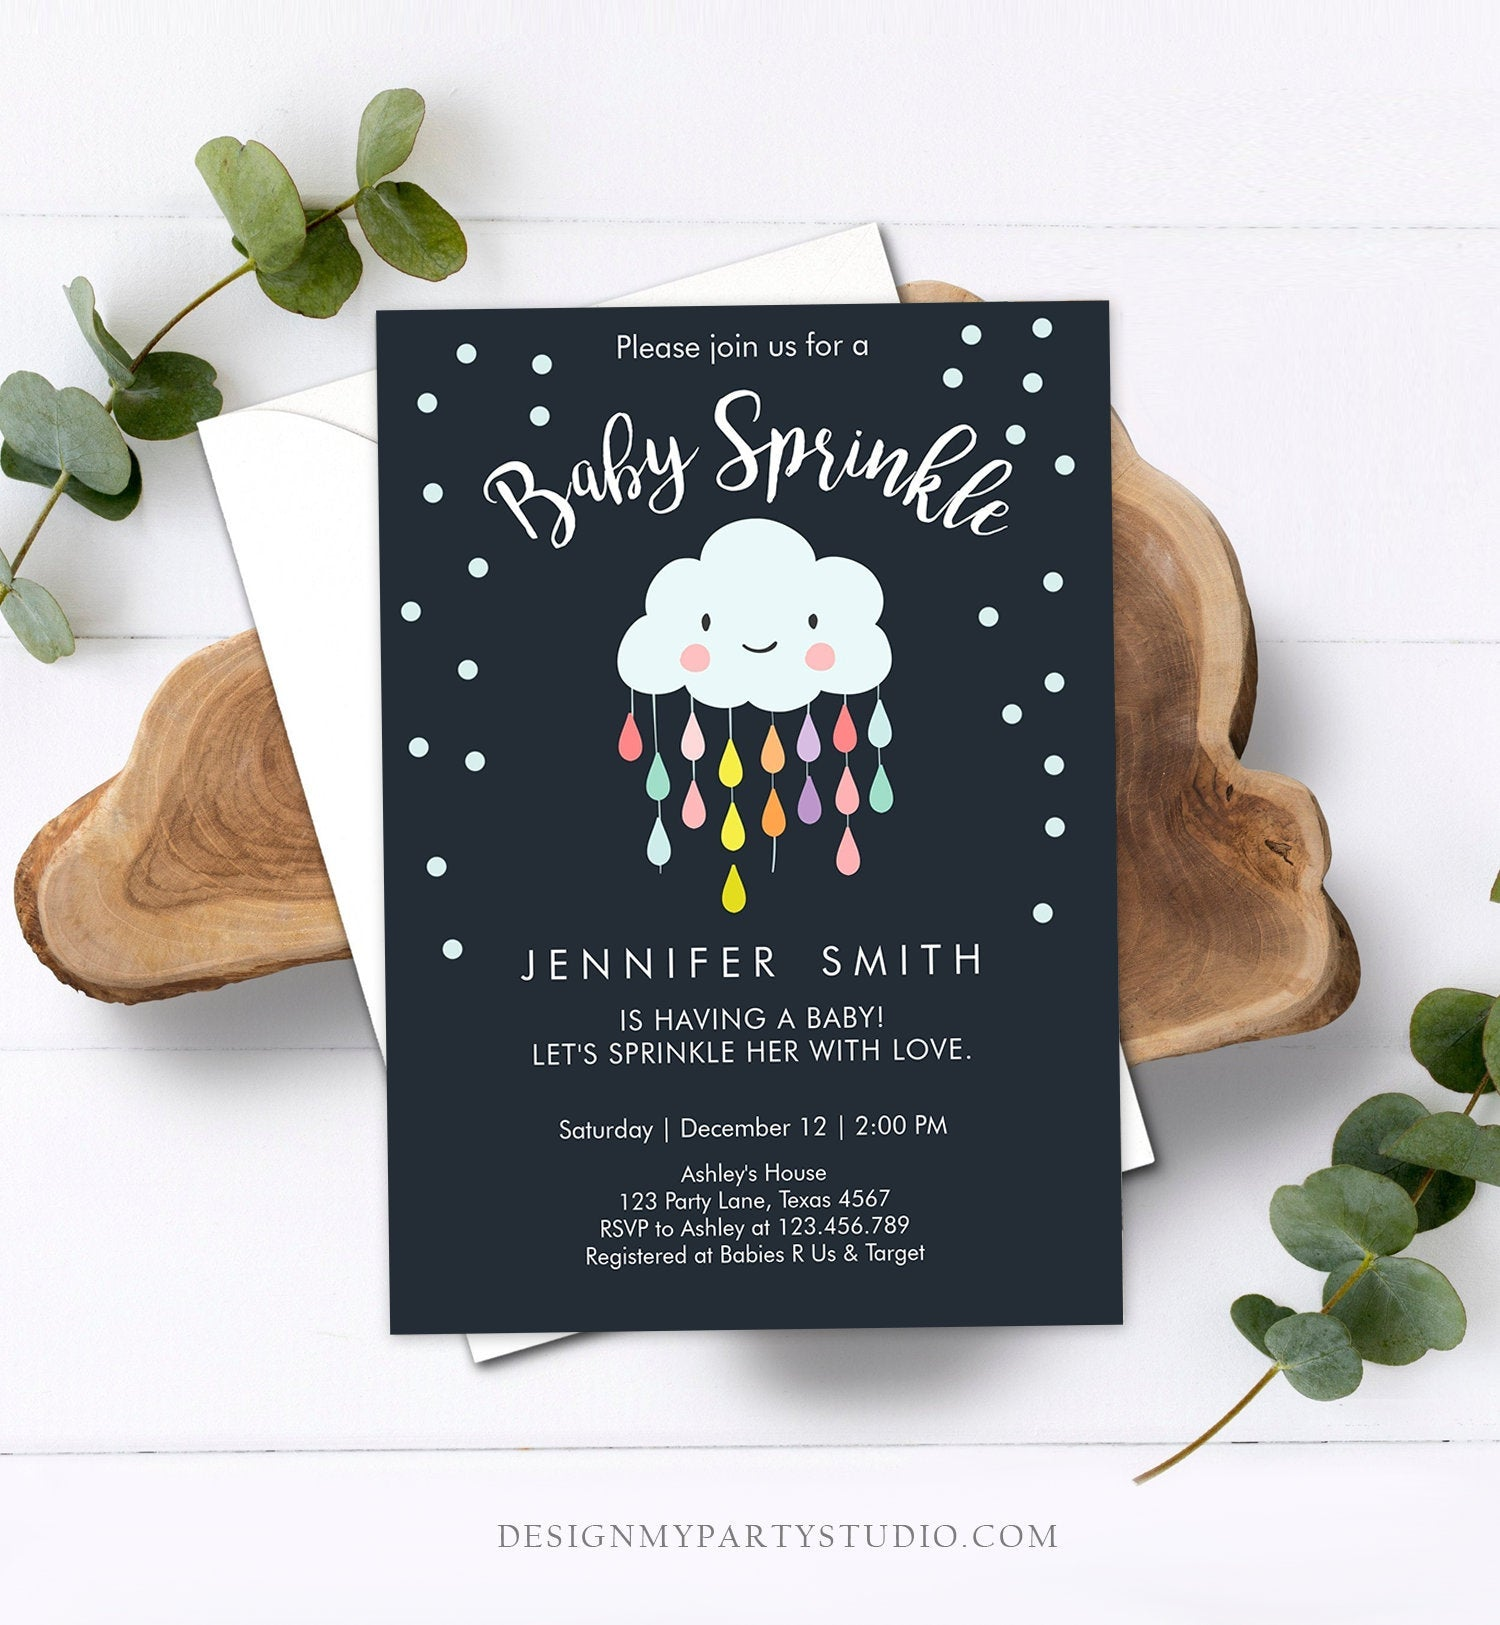 Editable Cloud Baby Sprinkle Invitation Raindrop Sprinkle with Love Rain Drops Neutral Download Printable Corjl Template Digital 0036